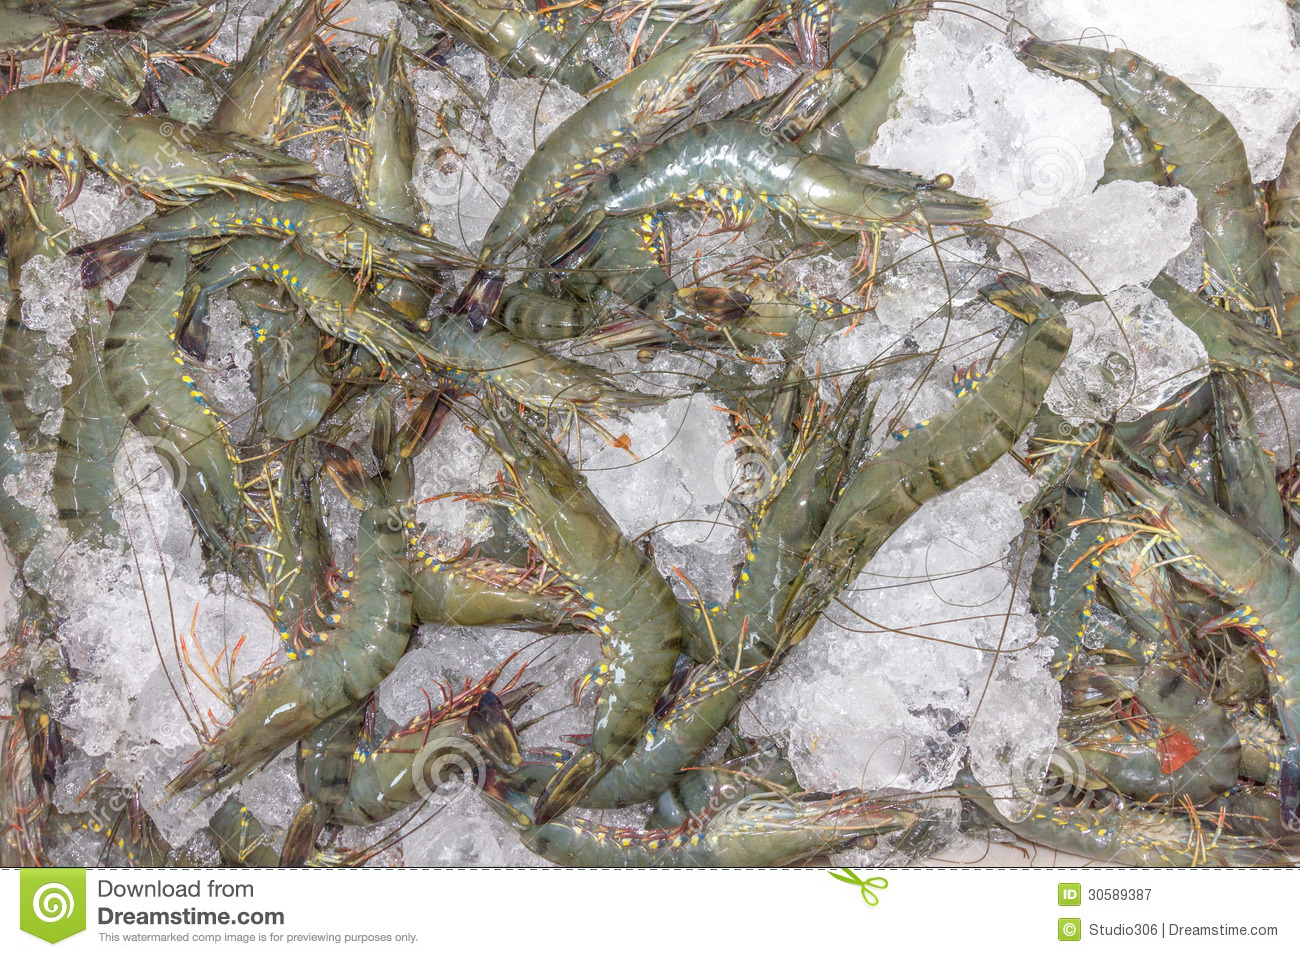 Shrimp Stock Royalty Free Stock Photography - Image: 30589387